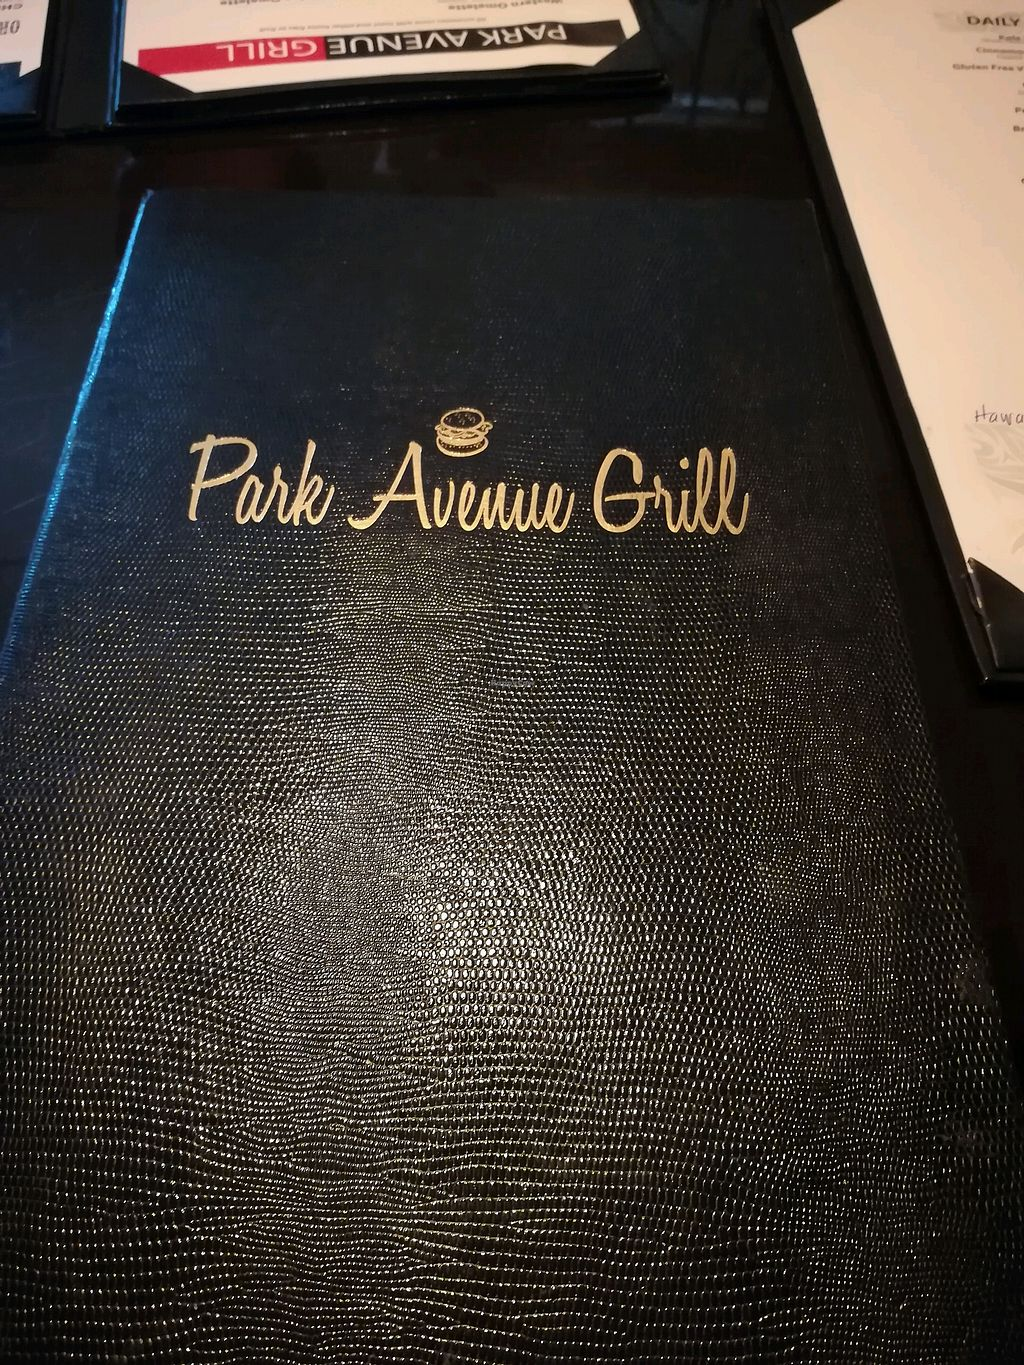 "Photo of Park Avenue Grill  by <a href=""/members/profile/LupitaMartinez"">LupitaMartinez</a> <br/>menu <br/> April 30, 2018  - <a href='/contact/abuse/image/105477/393160'>Report</a>"